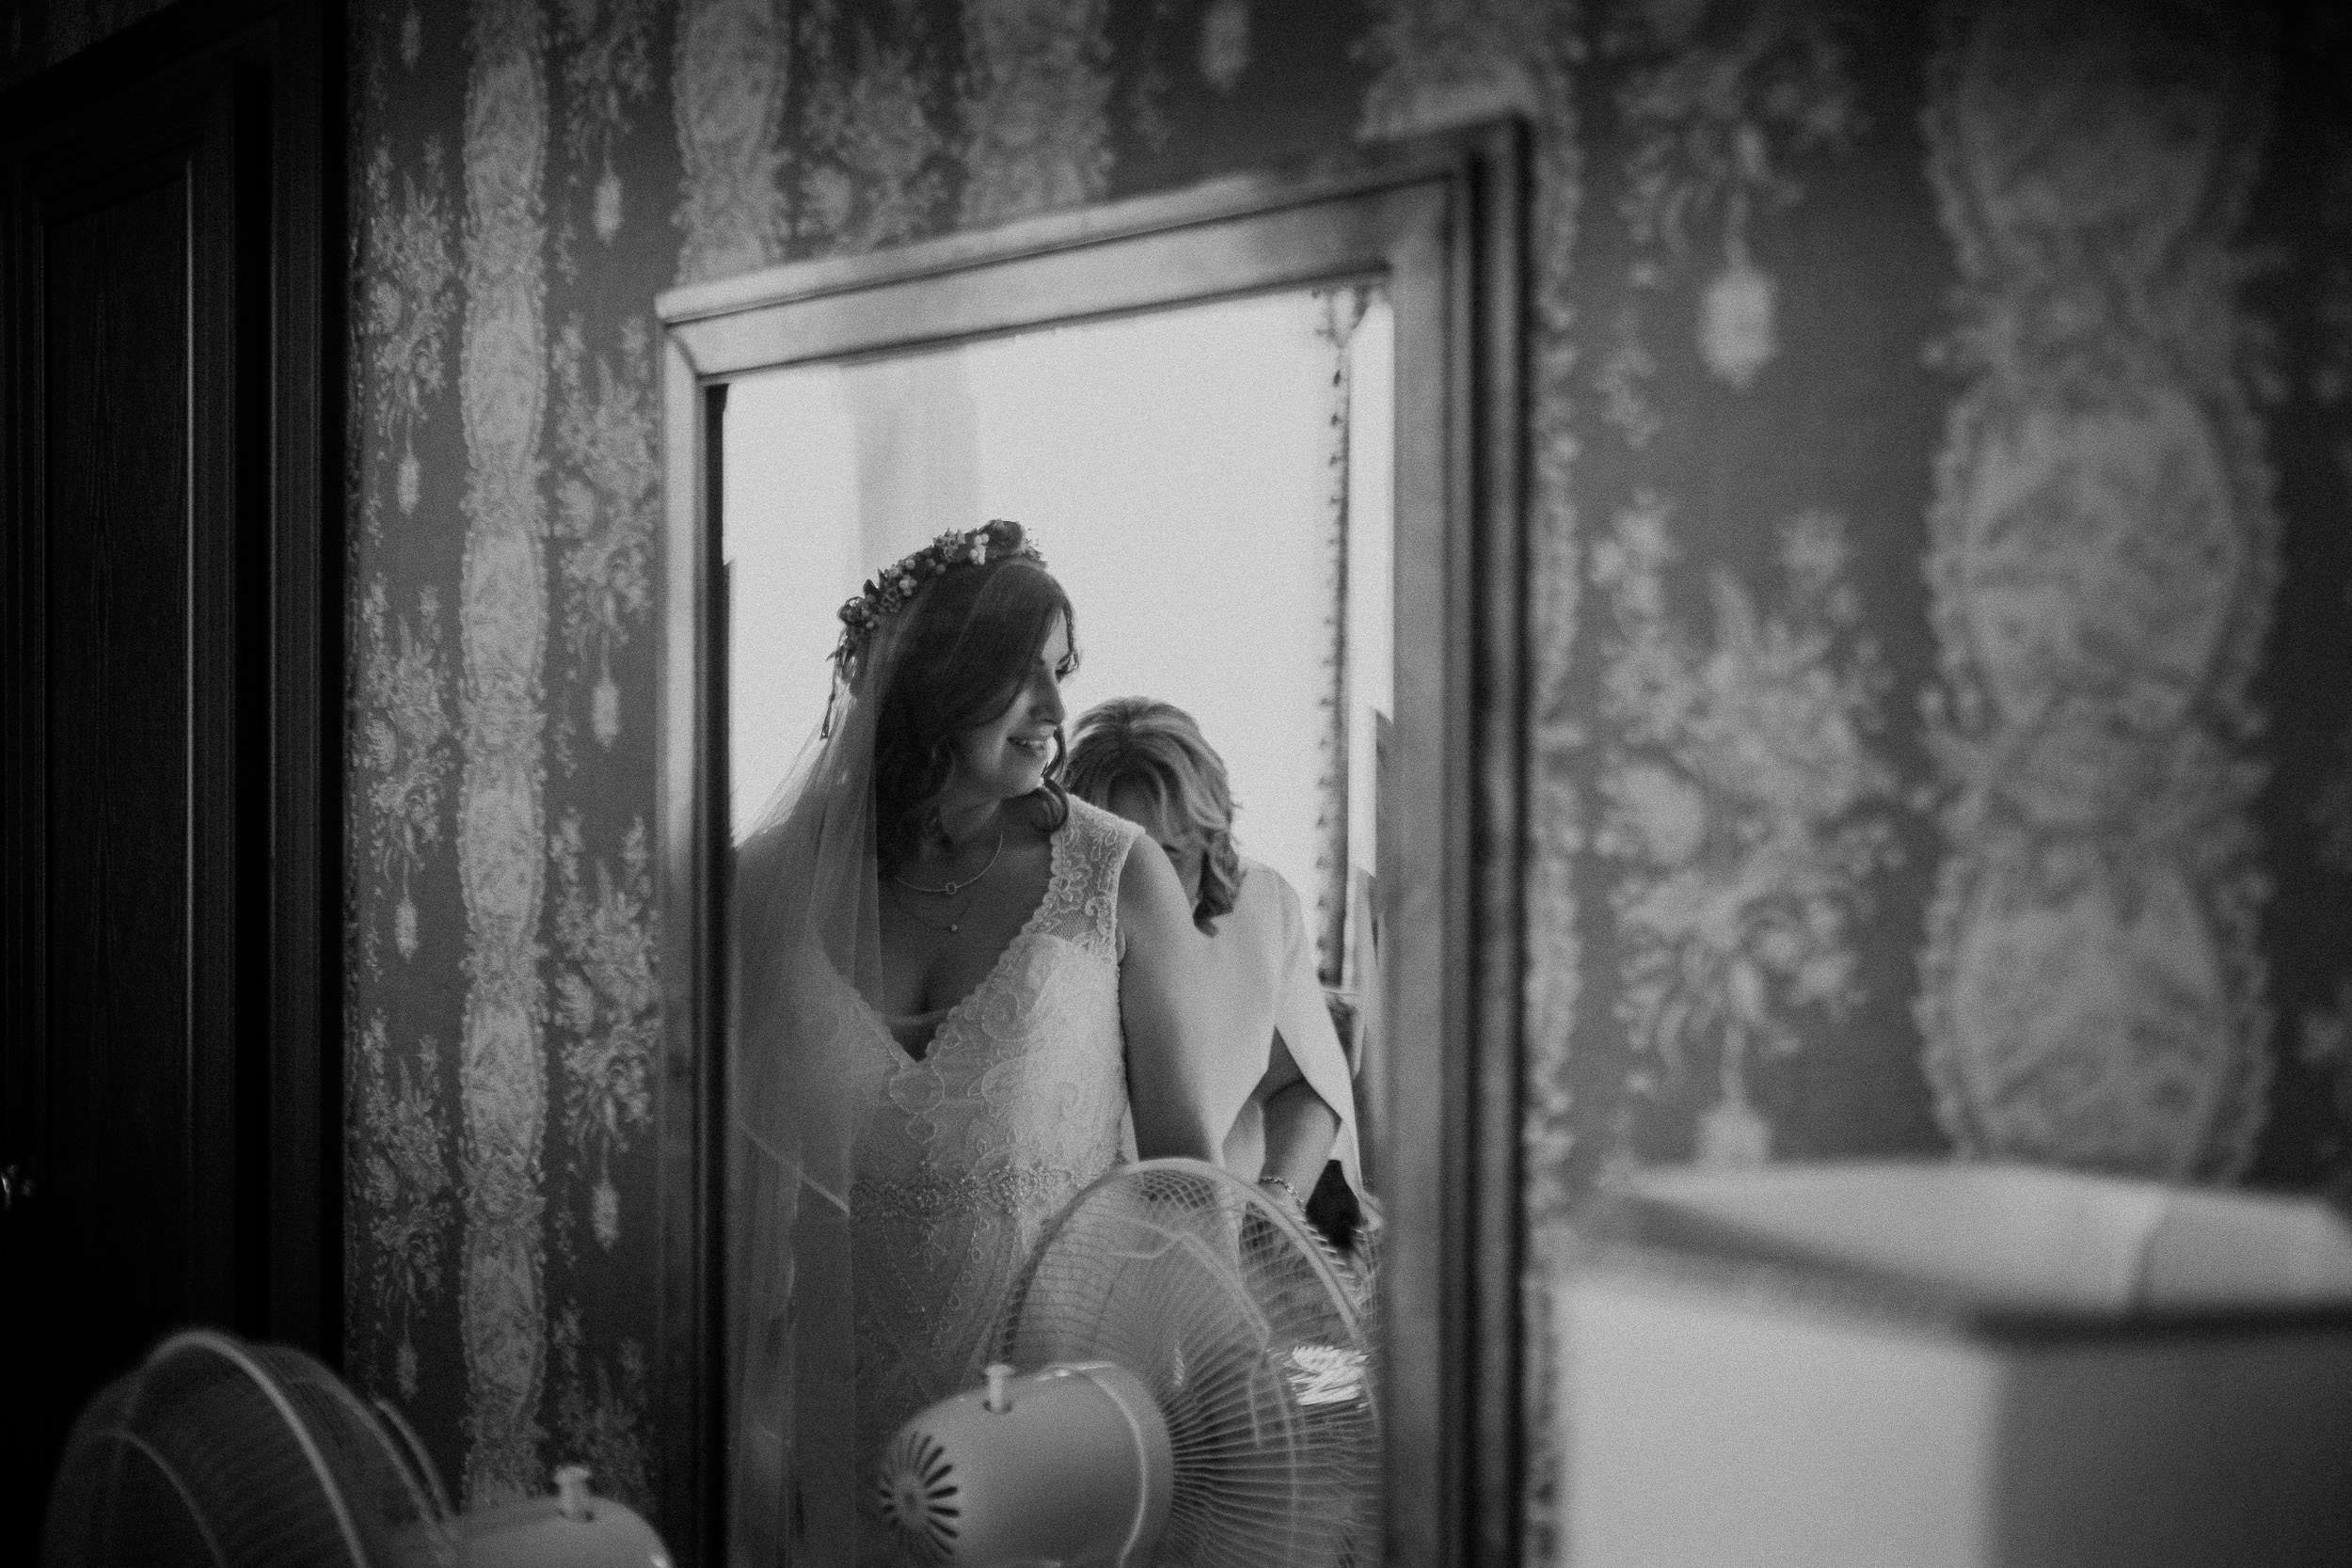 Black and white photo of bride reflected in mirror